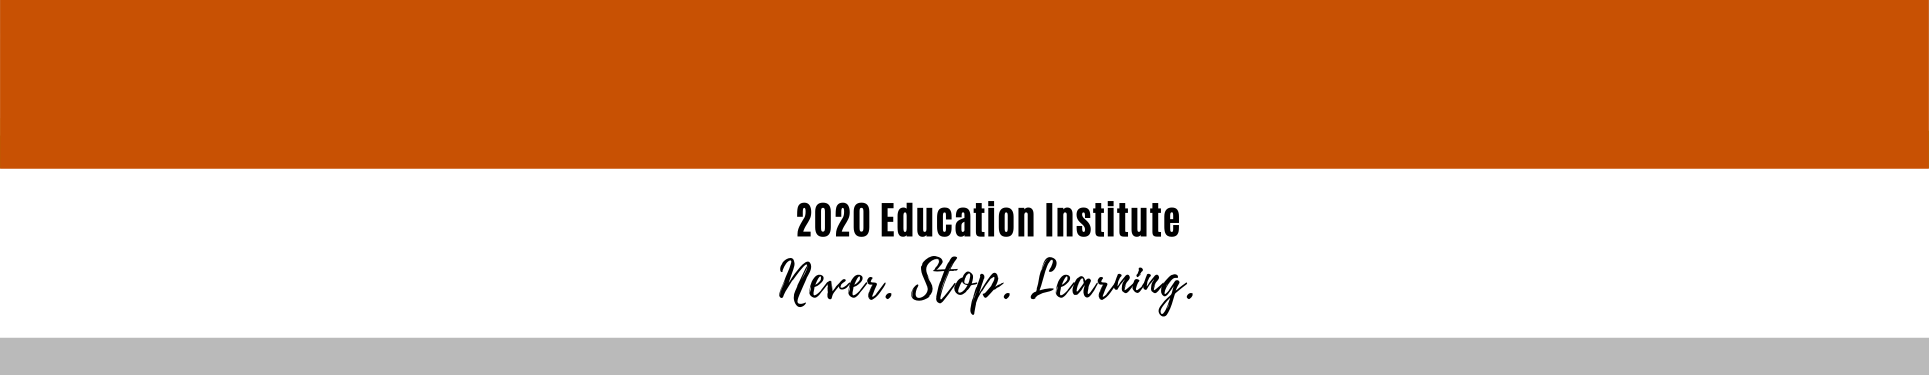 "Education Institute 2020 - ""Never Stop Learning"""